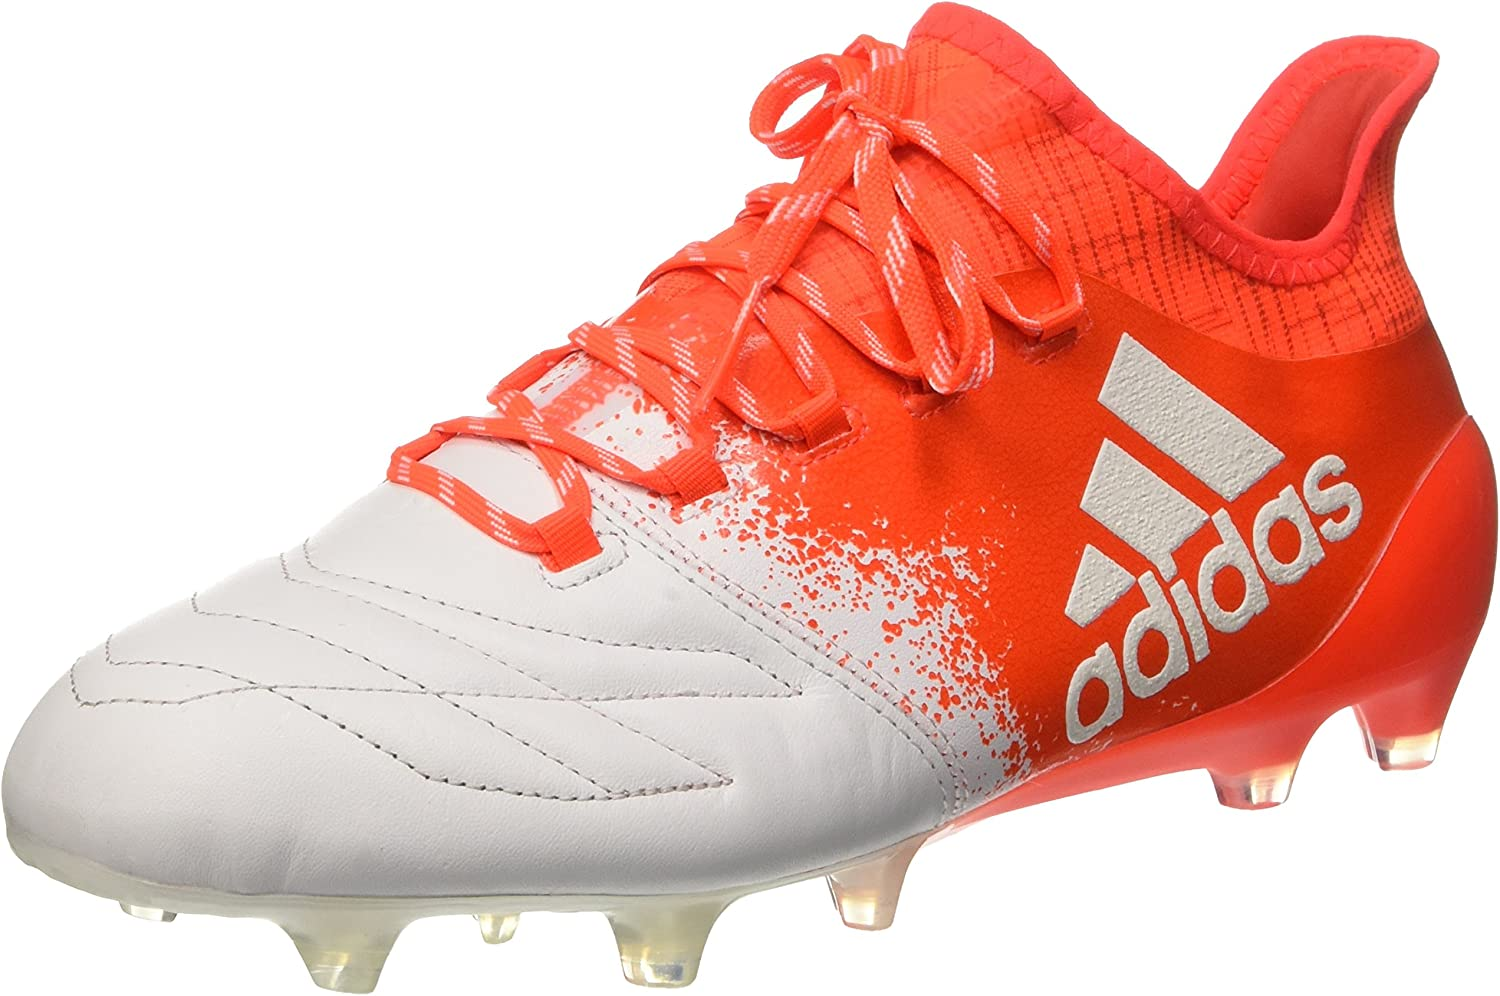 Adidas X 16.1 Fg Leather W Football Boots